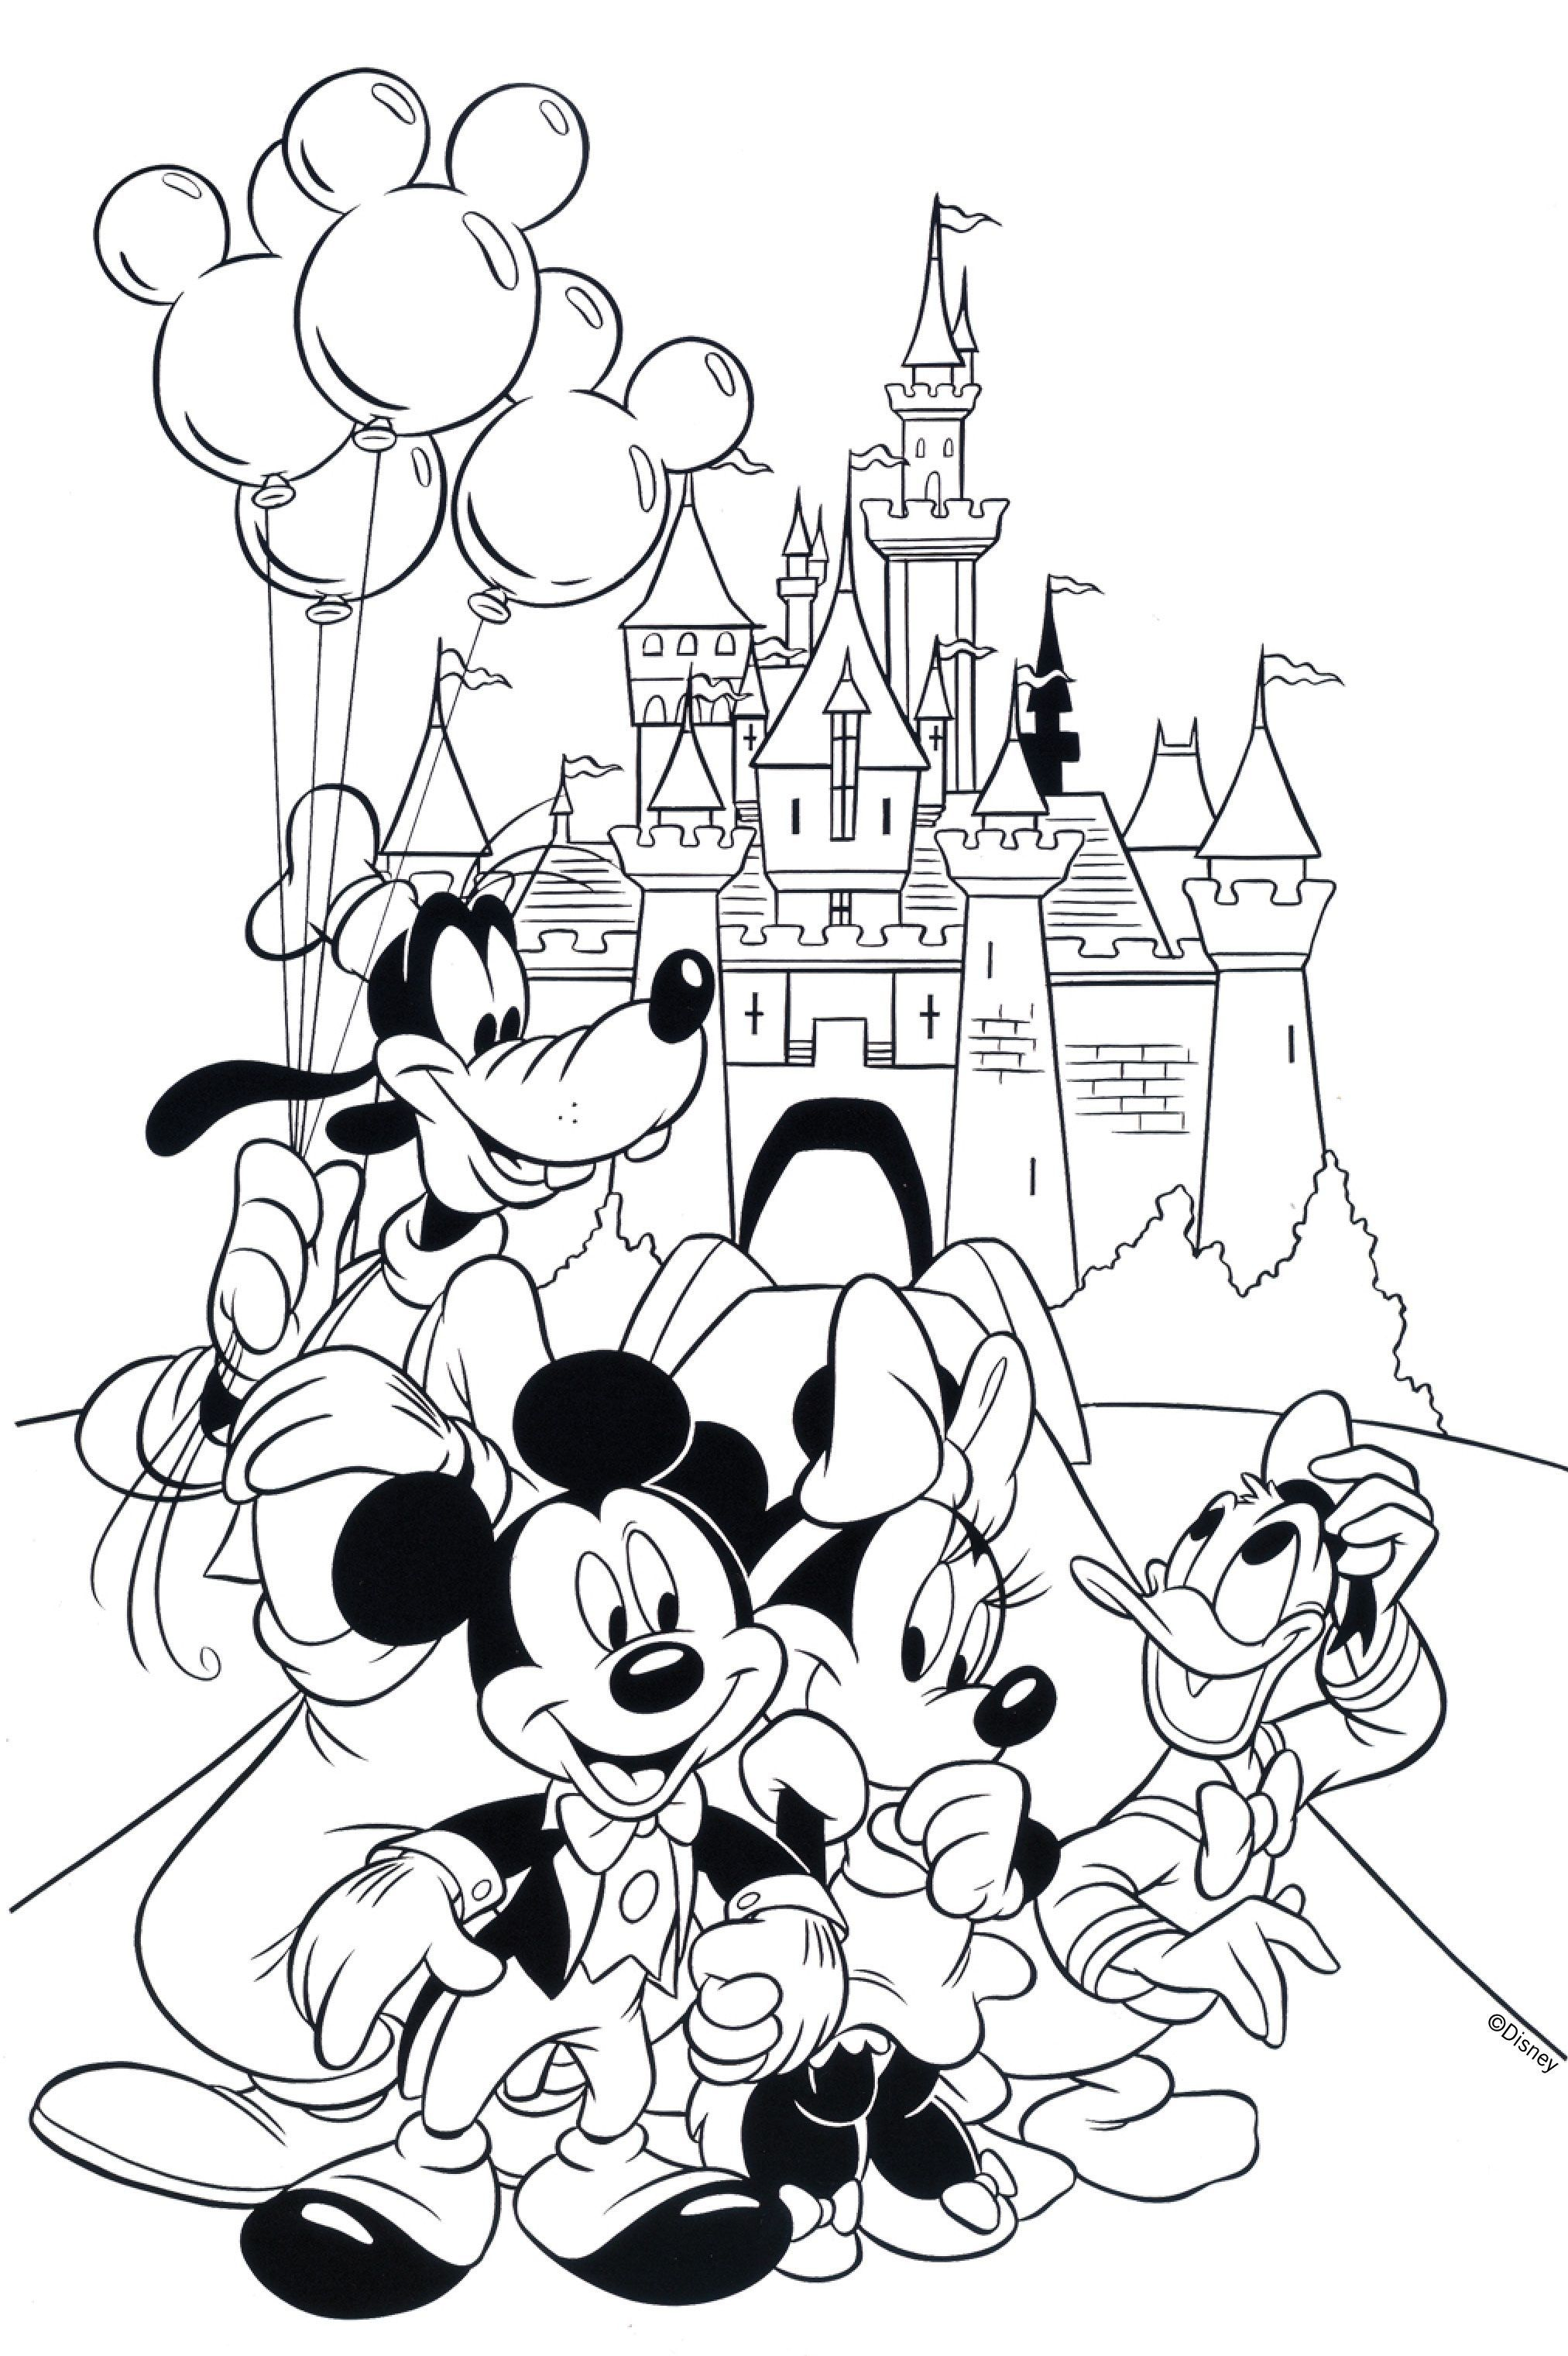 Happy Birthday Disney Coloring Pages Coloring Pages Allow Kids To Accompany Their Fa Disney Coloring Pages Mickey Mouse Coloring Pages Mickey Coloring Pages